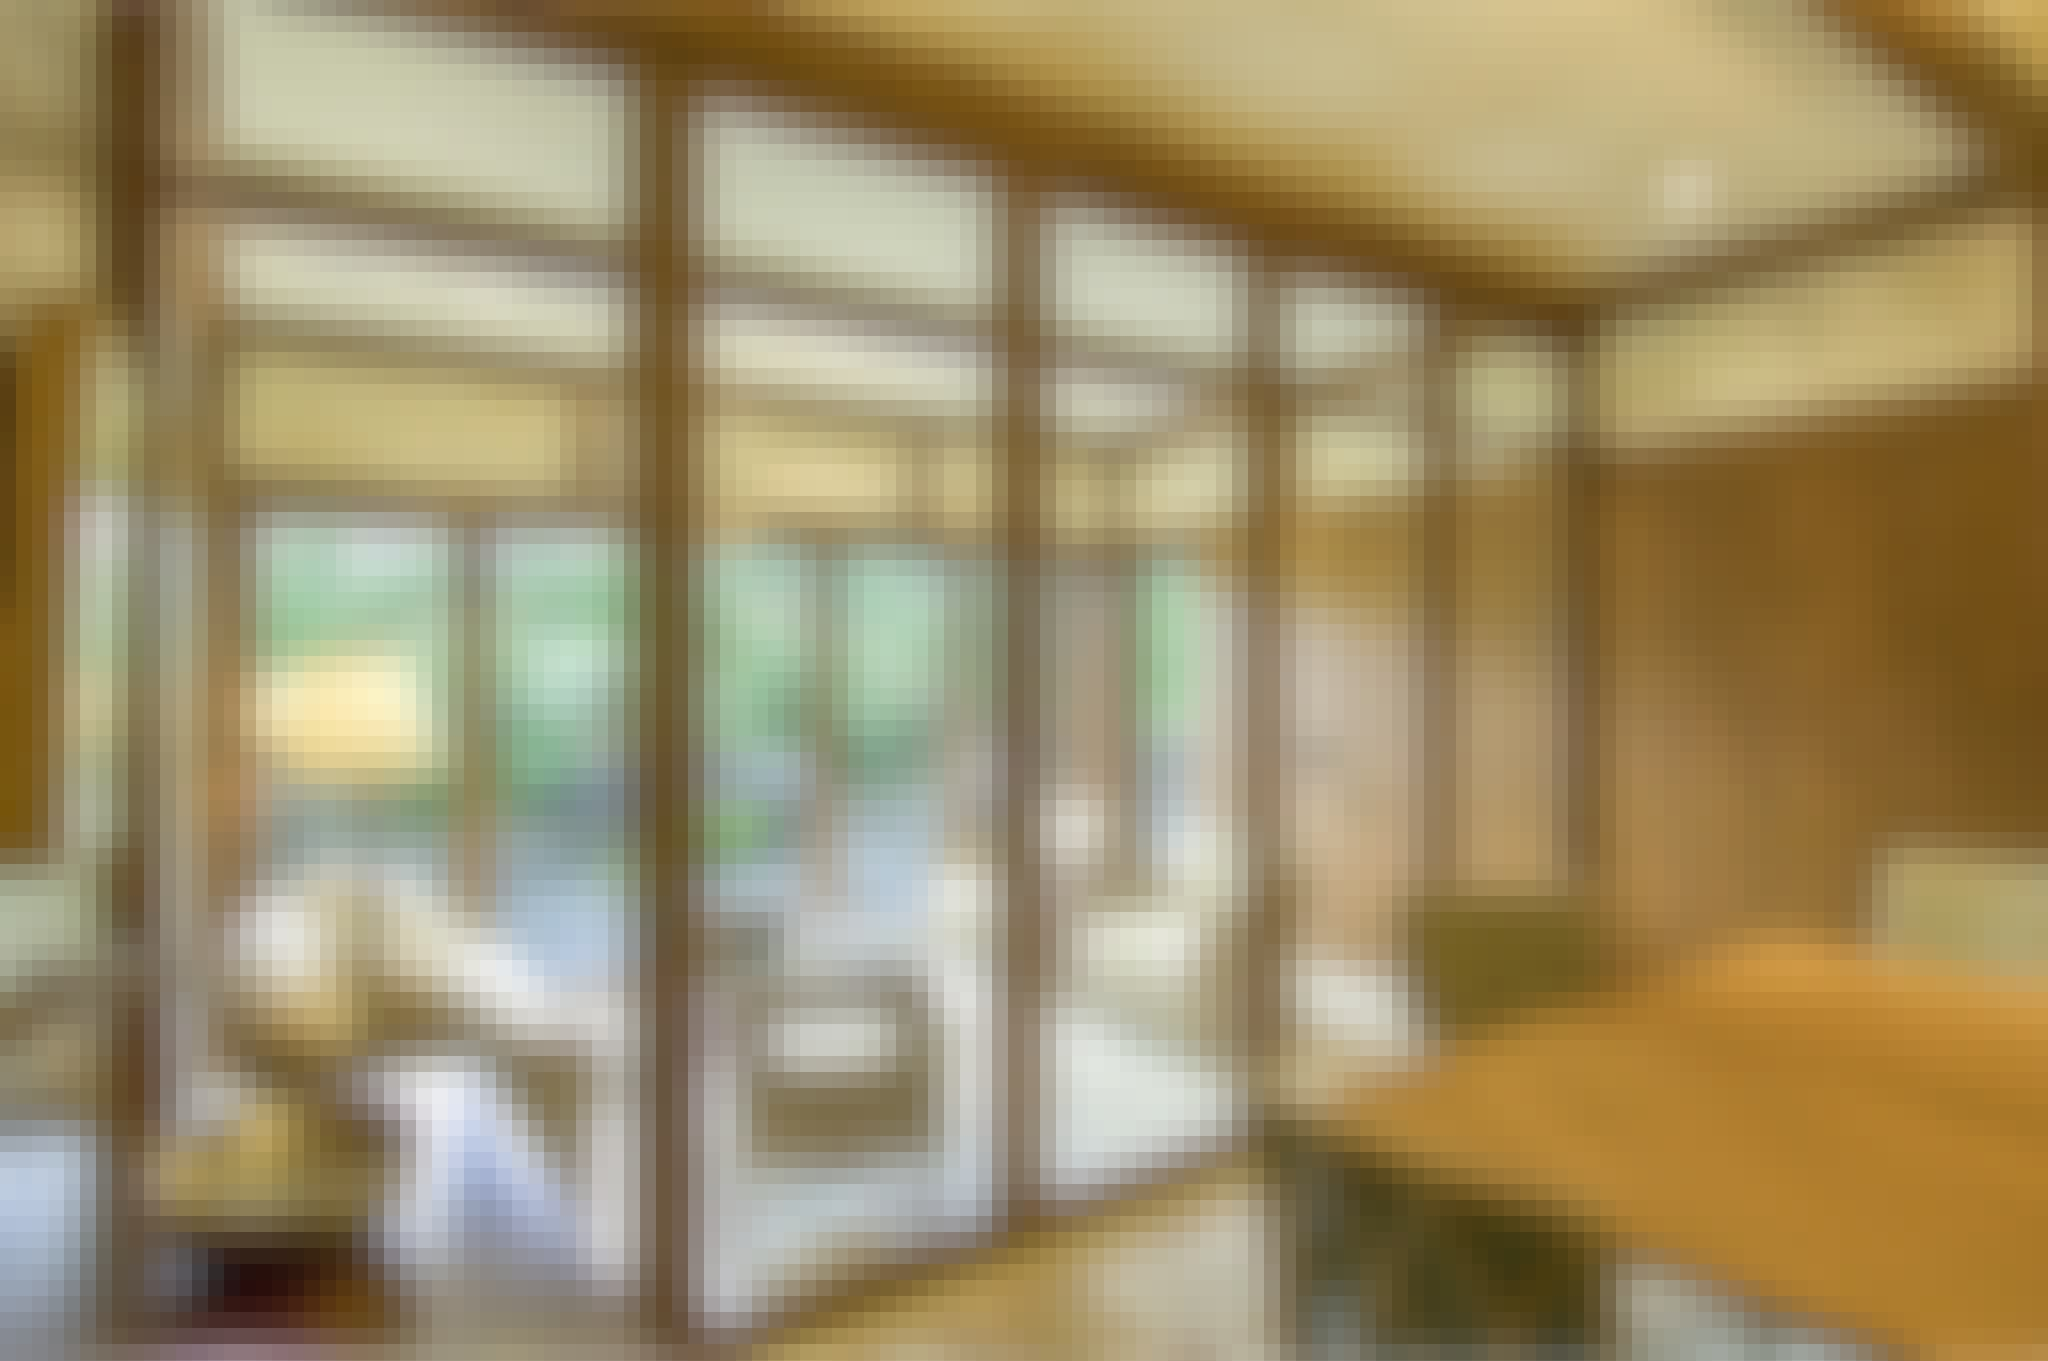 interior moving glass wall partitions for home workspace